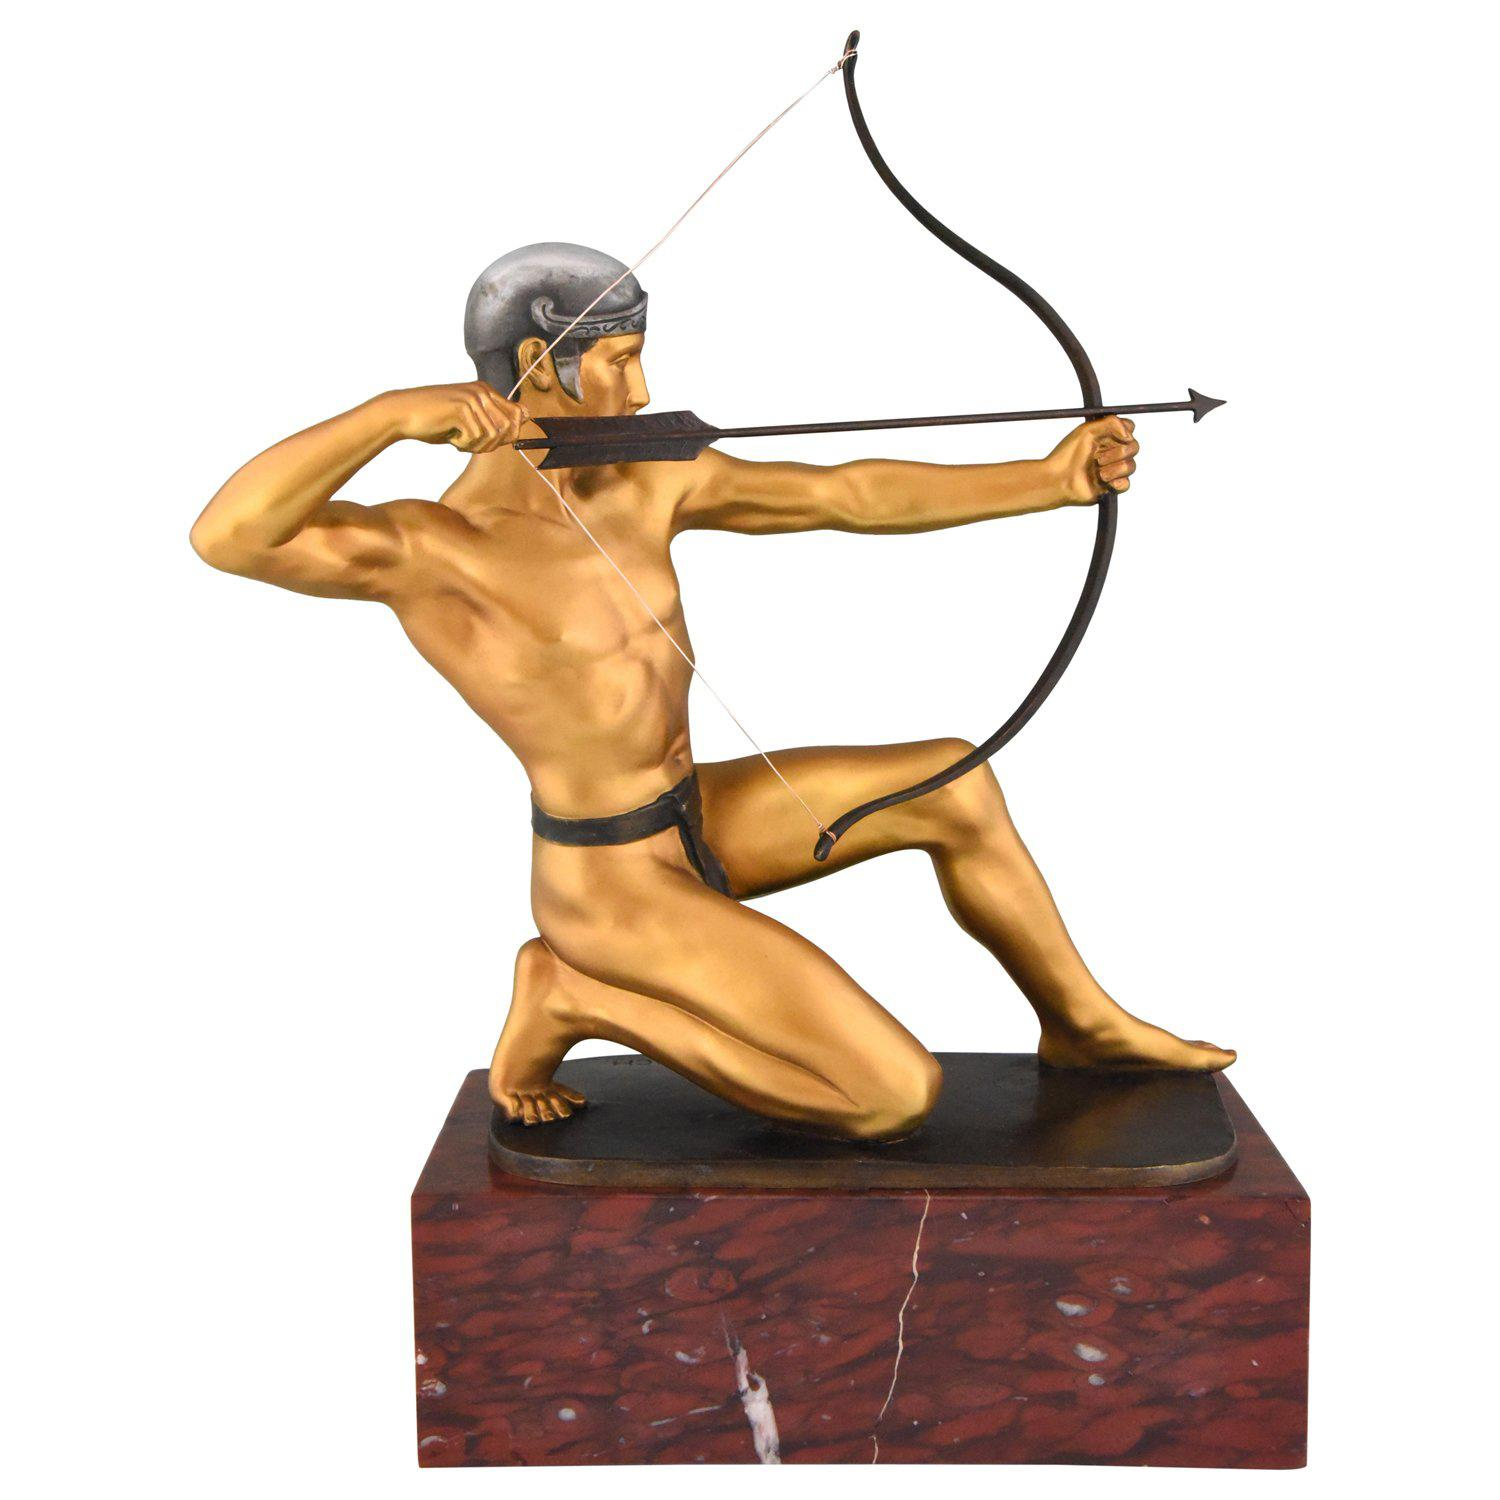 Antique Bronze Sculpture of a Male Nude Archer by Rudolf Kaesbach  1900